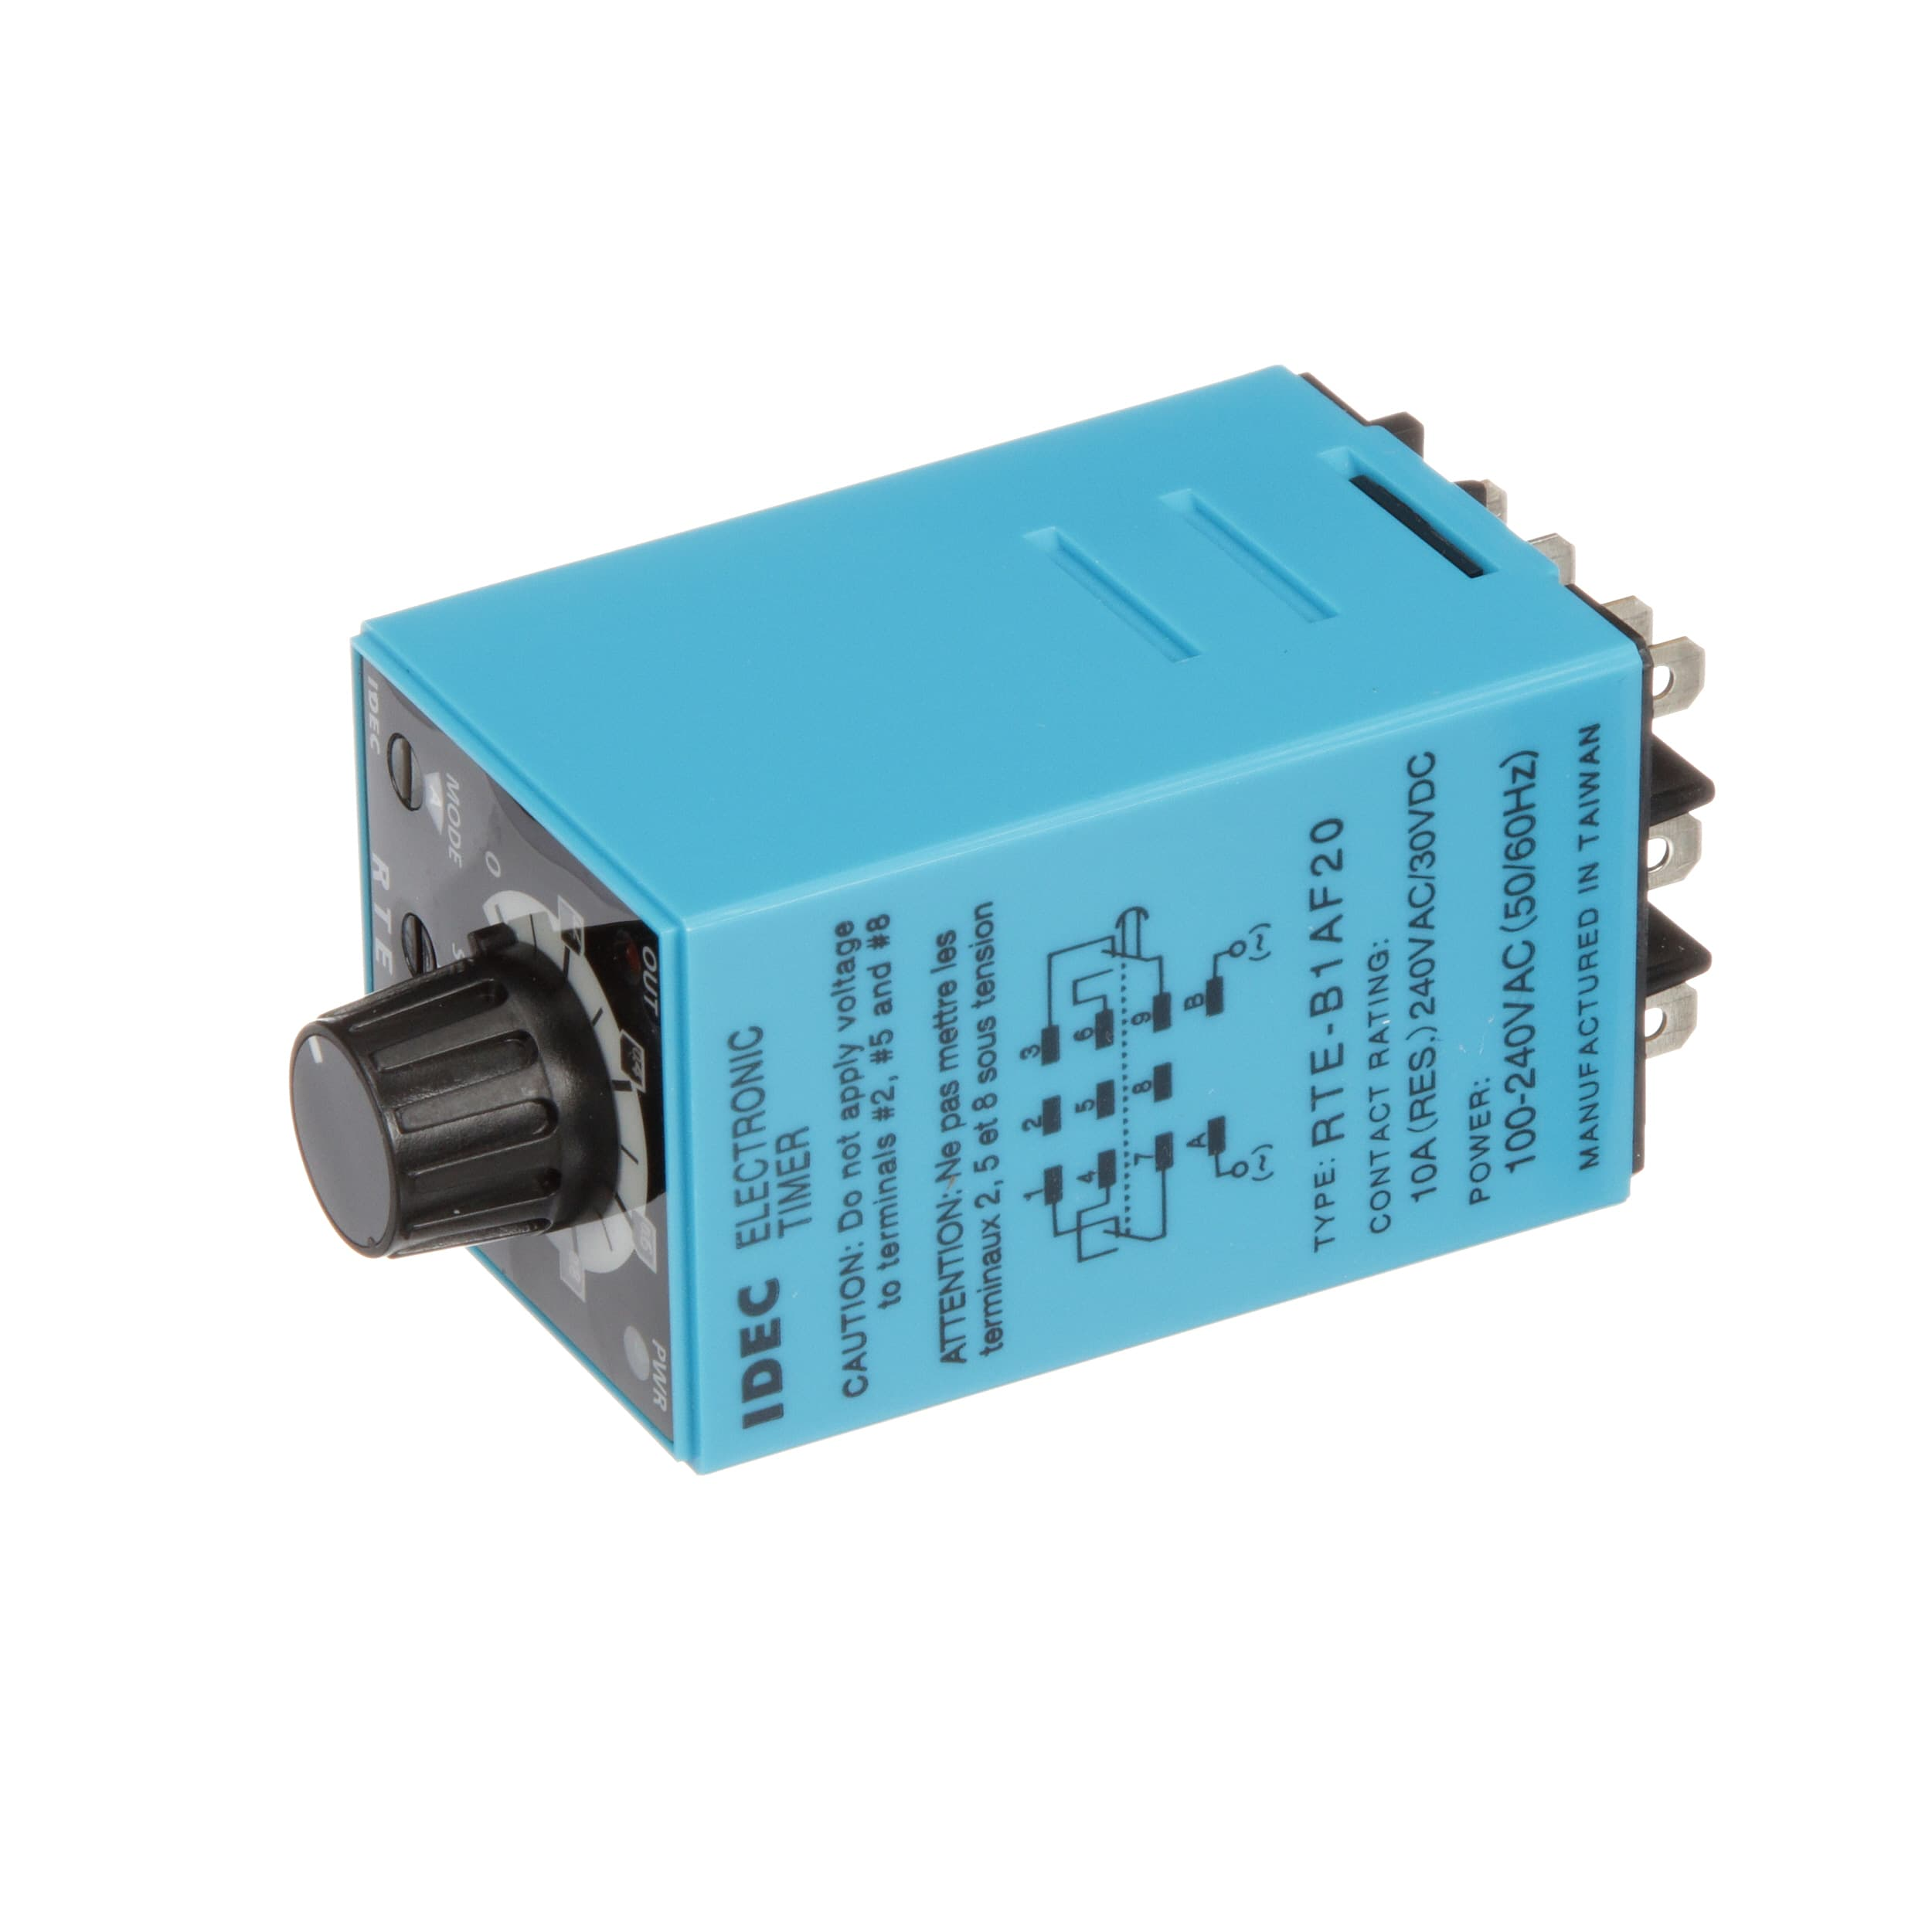 Idec Corporation Rte B1af20 Relay Ssr Timing Multi Function Wiring Dpdt Cur Rtg 10a Ctrl V 100 240ac Blade Allied Electronics Automation